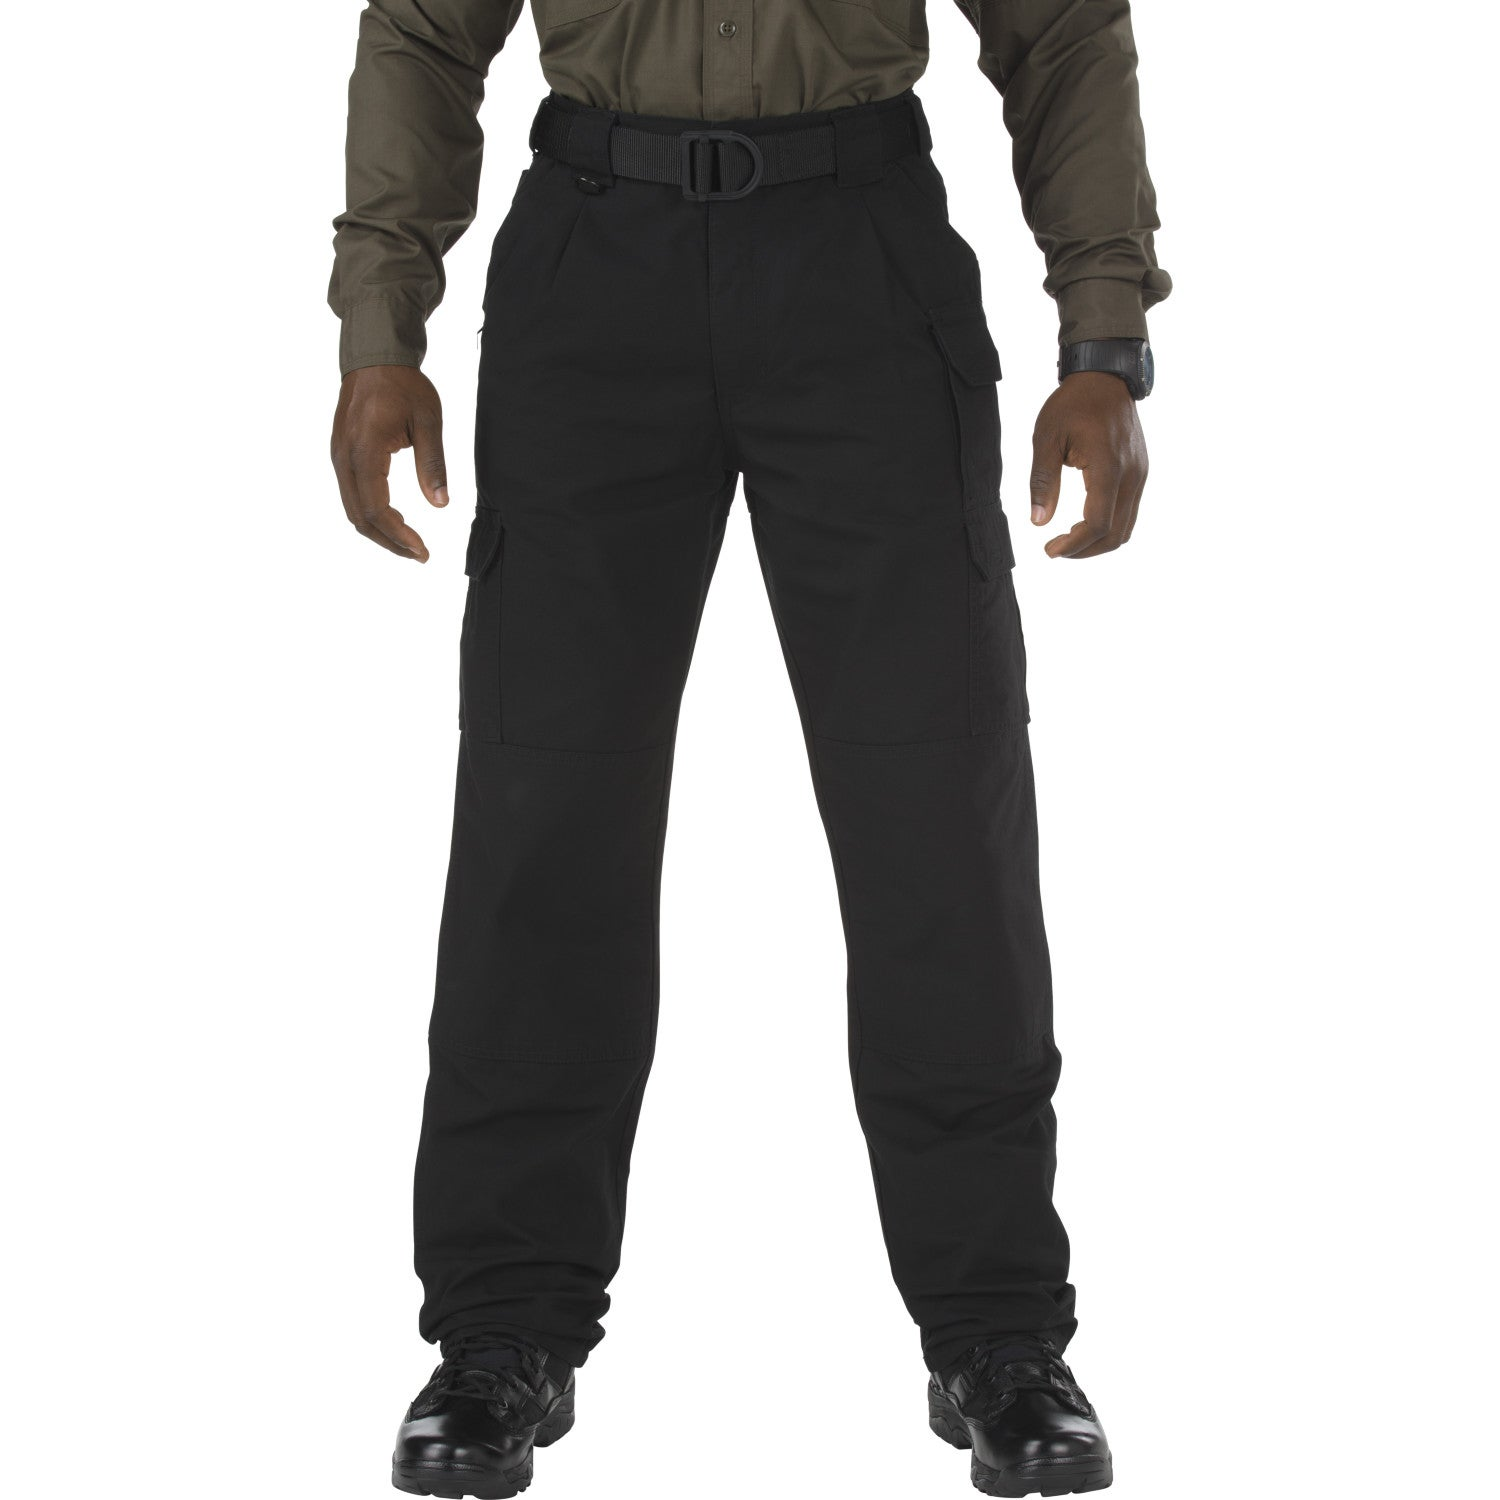 5.11 Tactical Cotton Broek